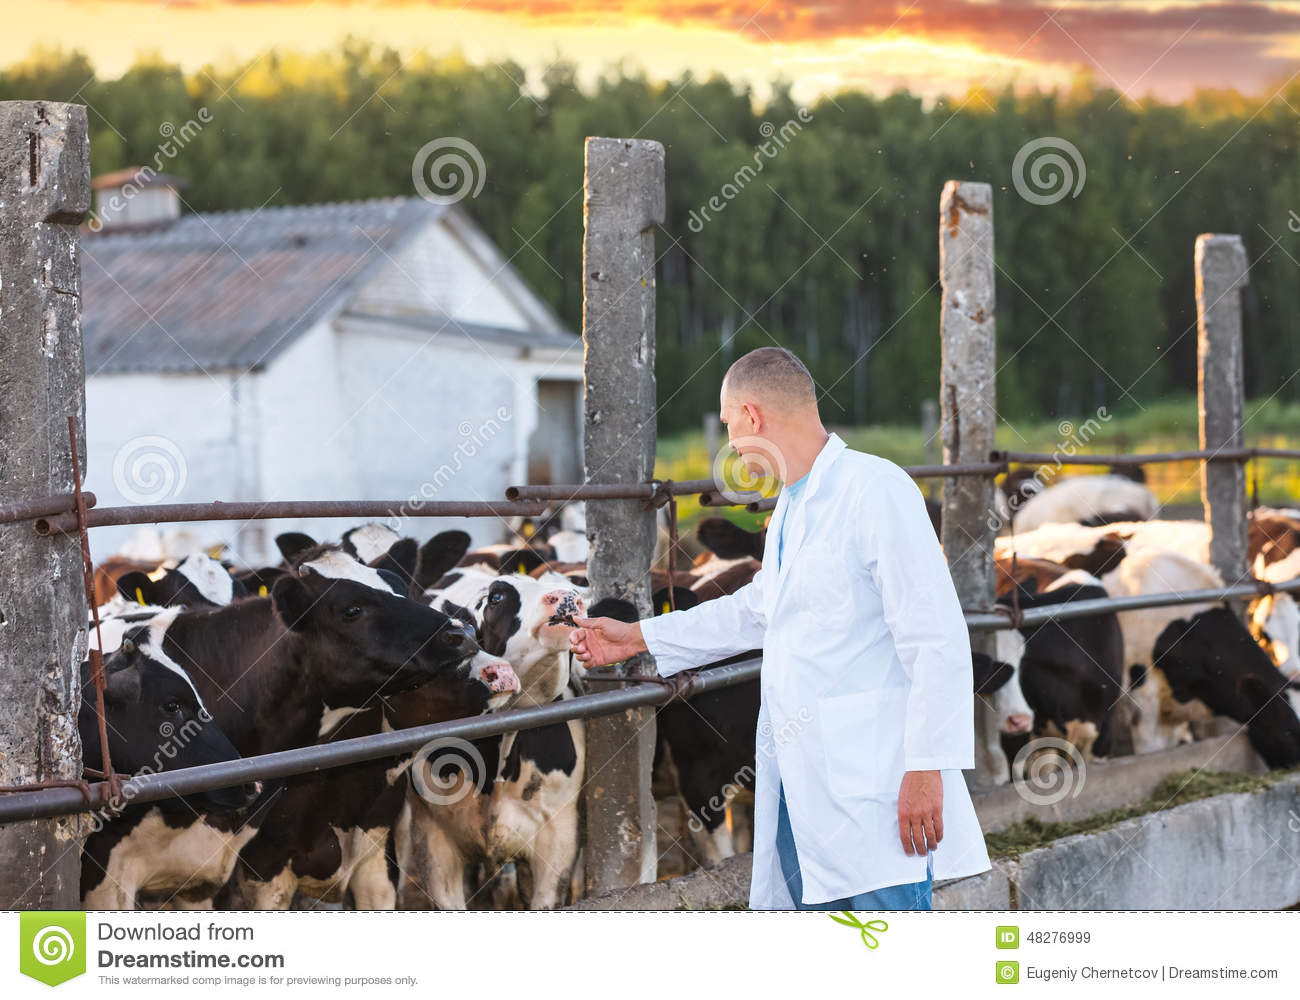 Man in a white coat on cows farm